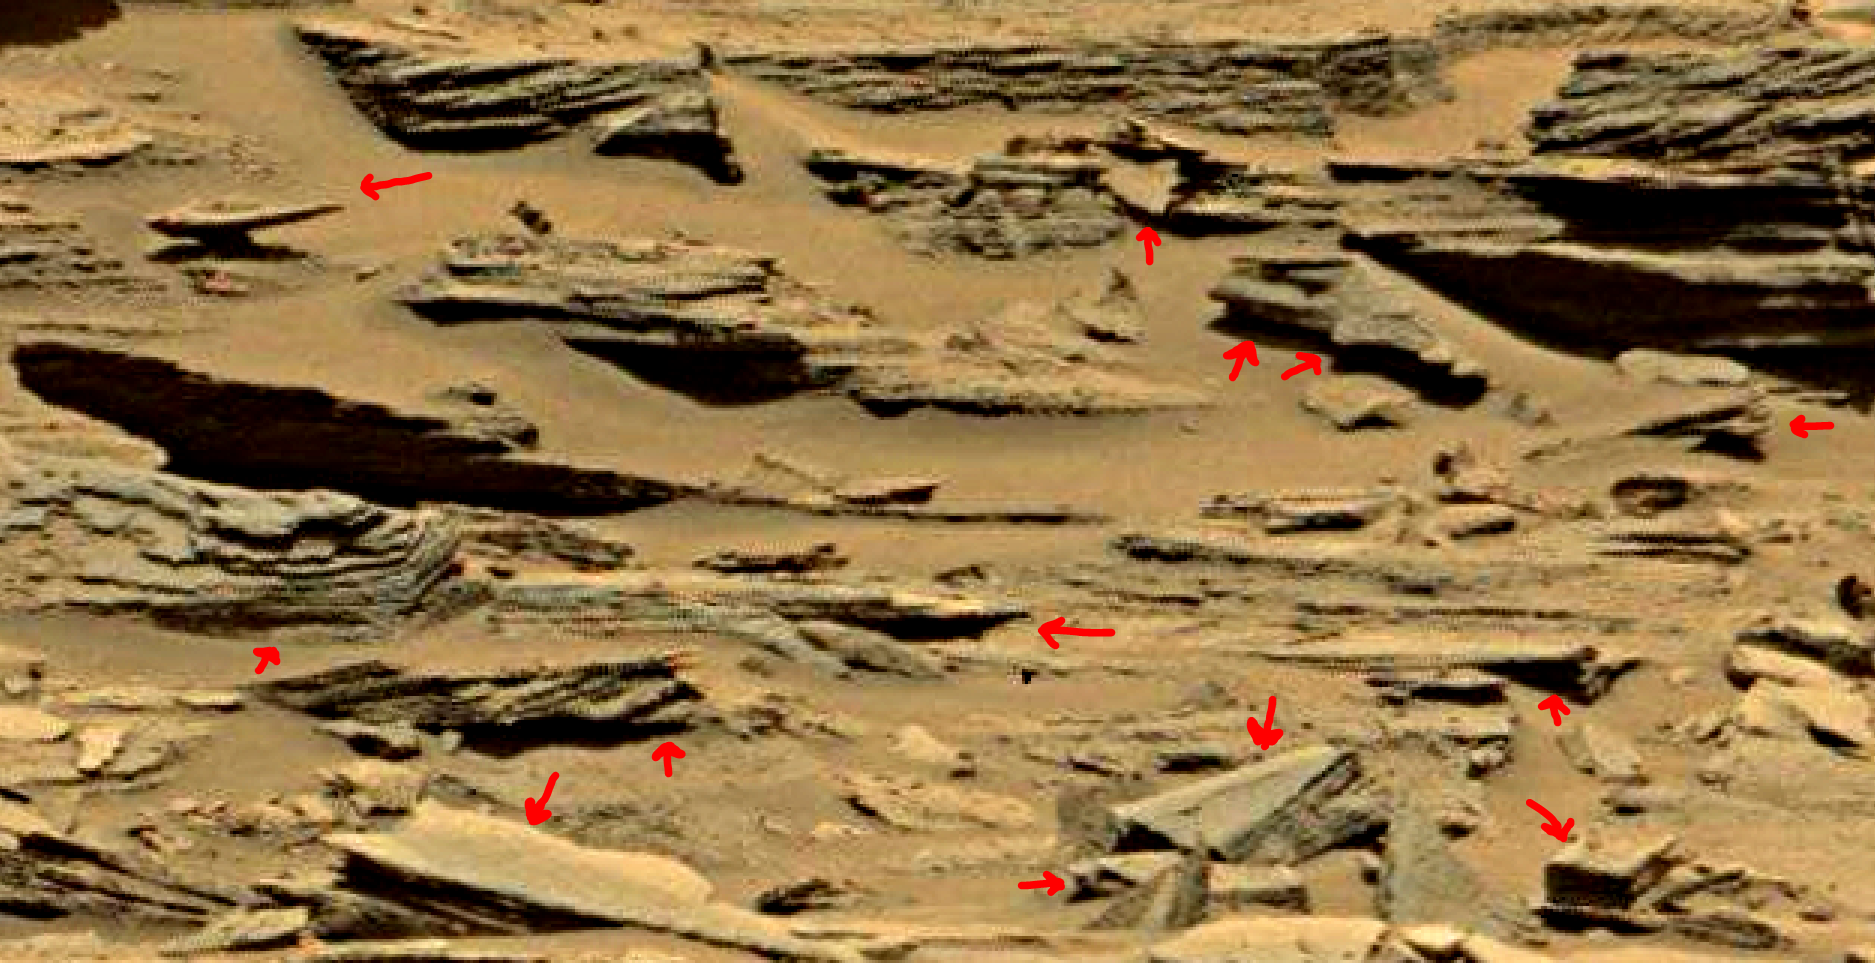 mars sol 1353 anomaly-artifacts 33a was life on mars